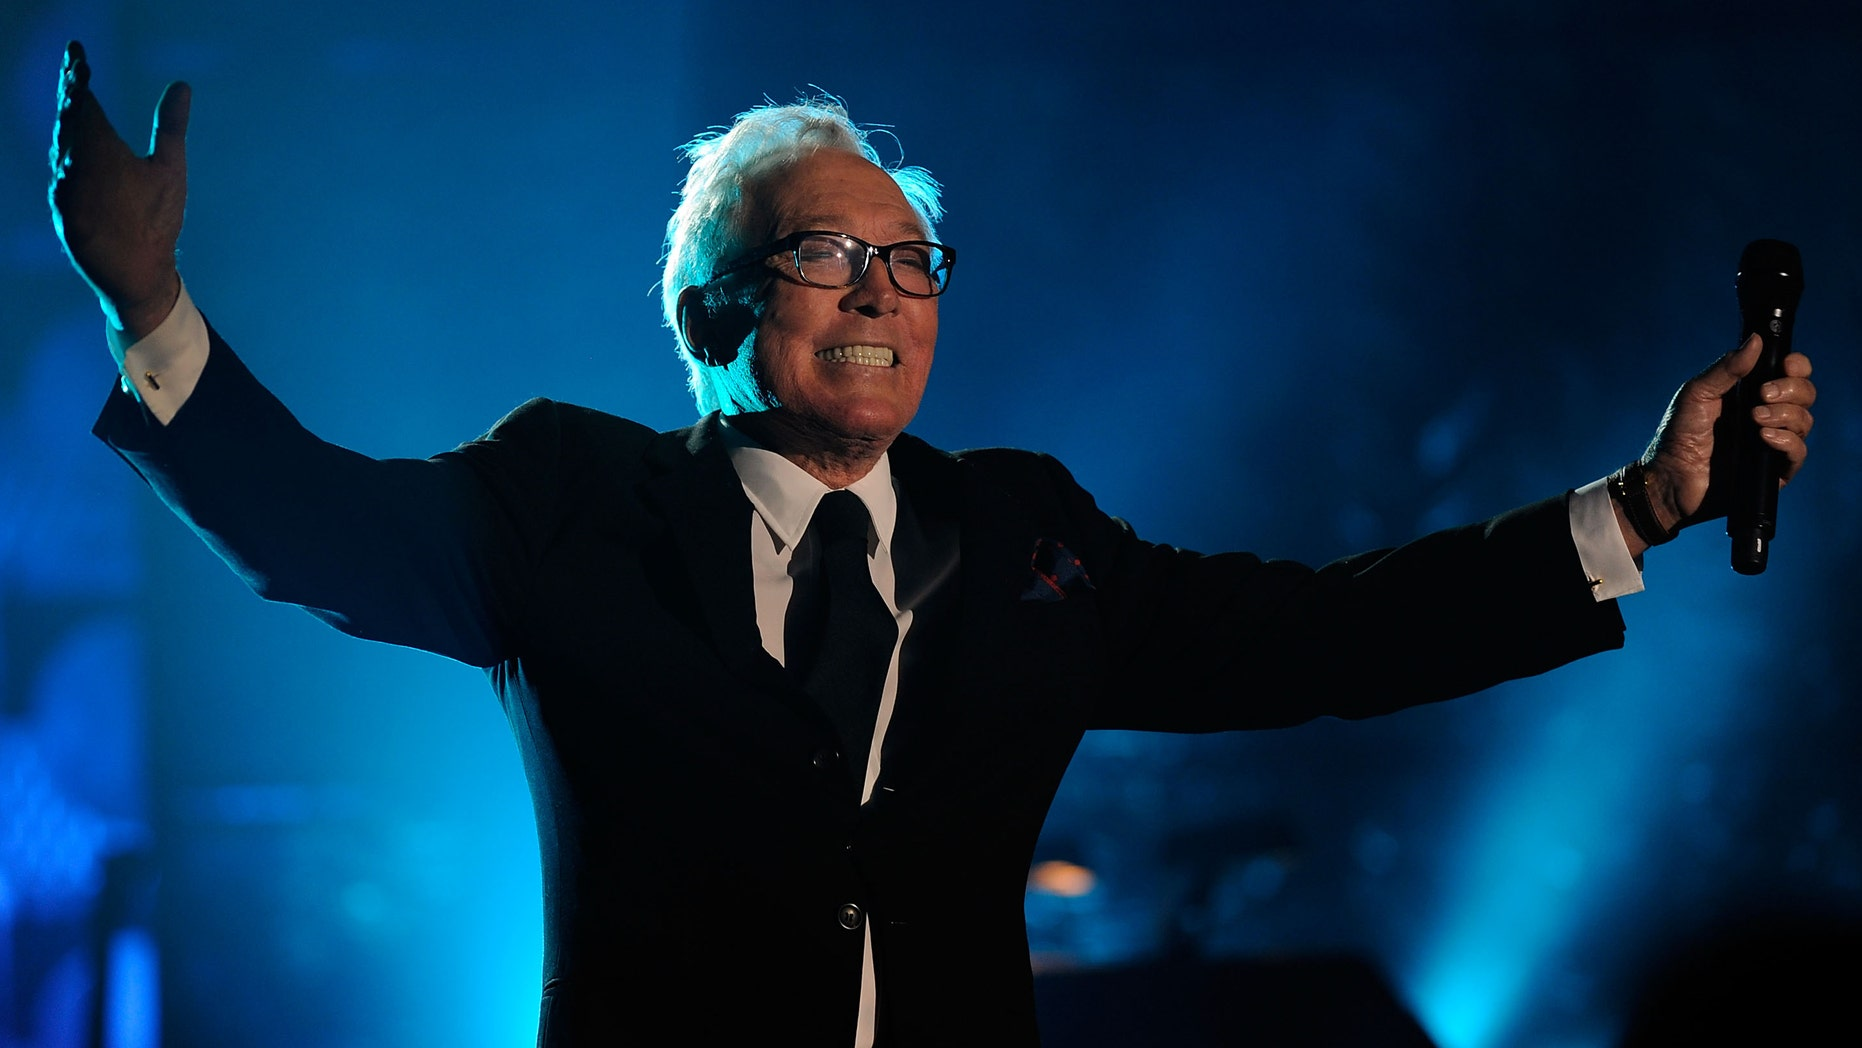 NEW YORK - JUNE 18:  Singer/Songwriter Andy Williams performs on stage during the 40th Annual Songwriters Hall of Fame Ceremony at The New York Marriott Marquis on June 18, 2009 in New York City.  (Photo by Larry Busacca/Getty Images for  Songwriters Hall of Fame) *** Local Caption *** Andy Williams